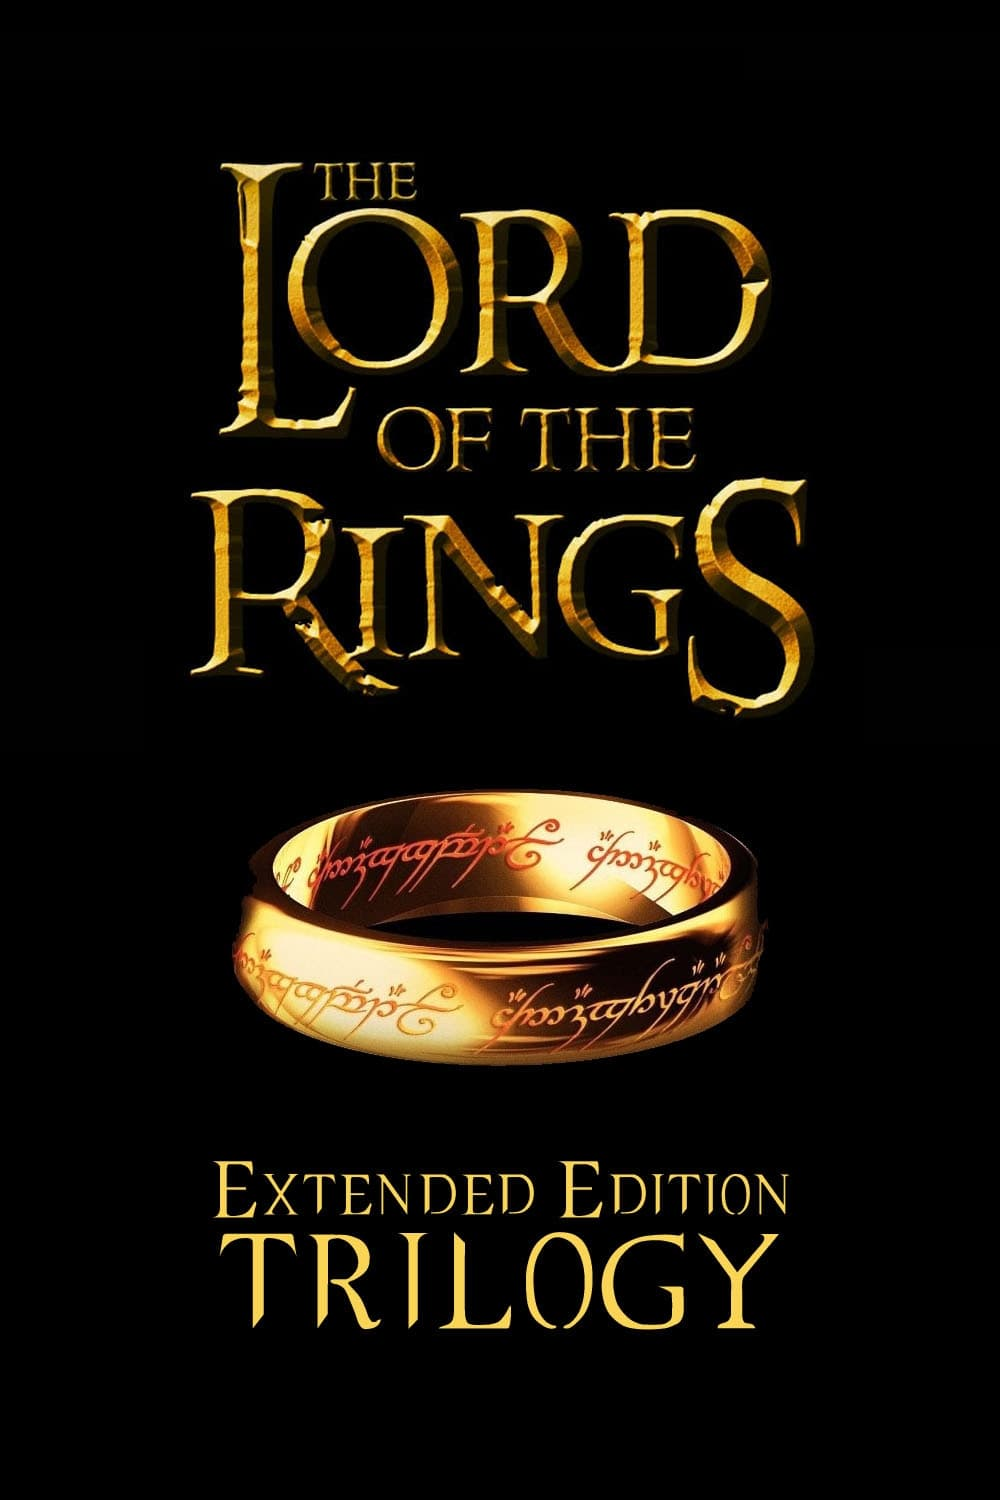 The Lord of the Rings Collection (2001-2003) - Posters — The